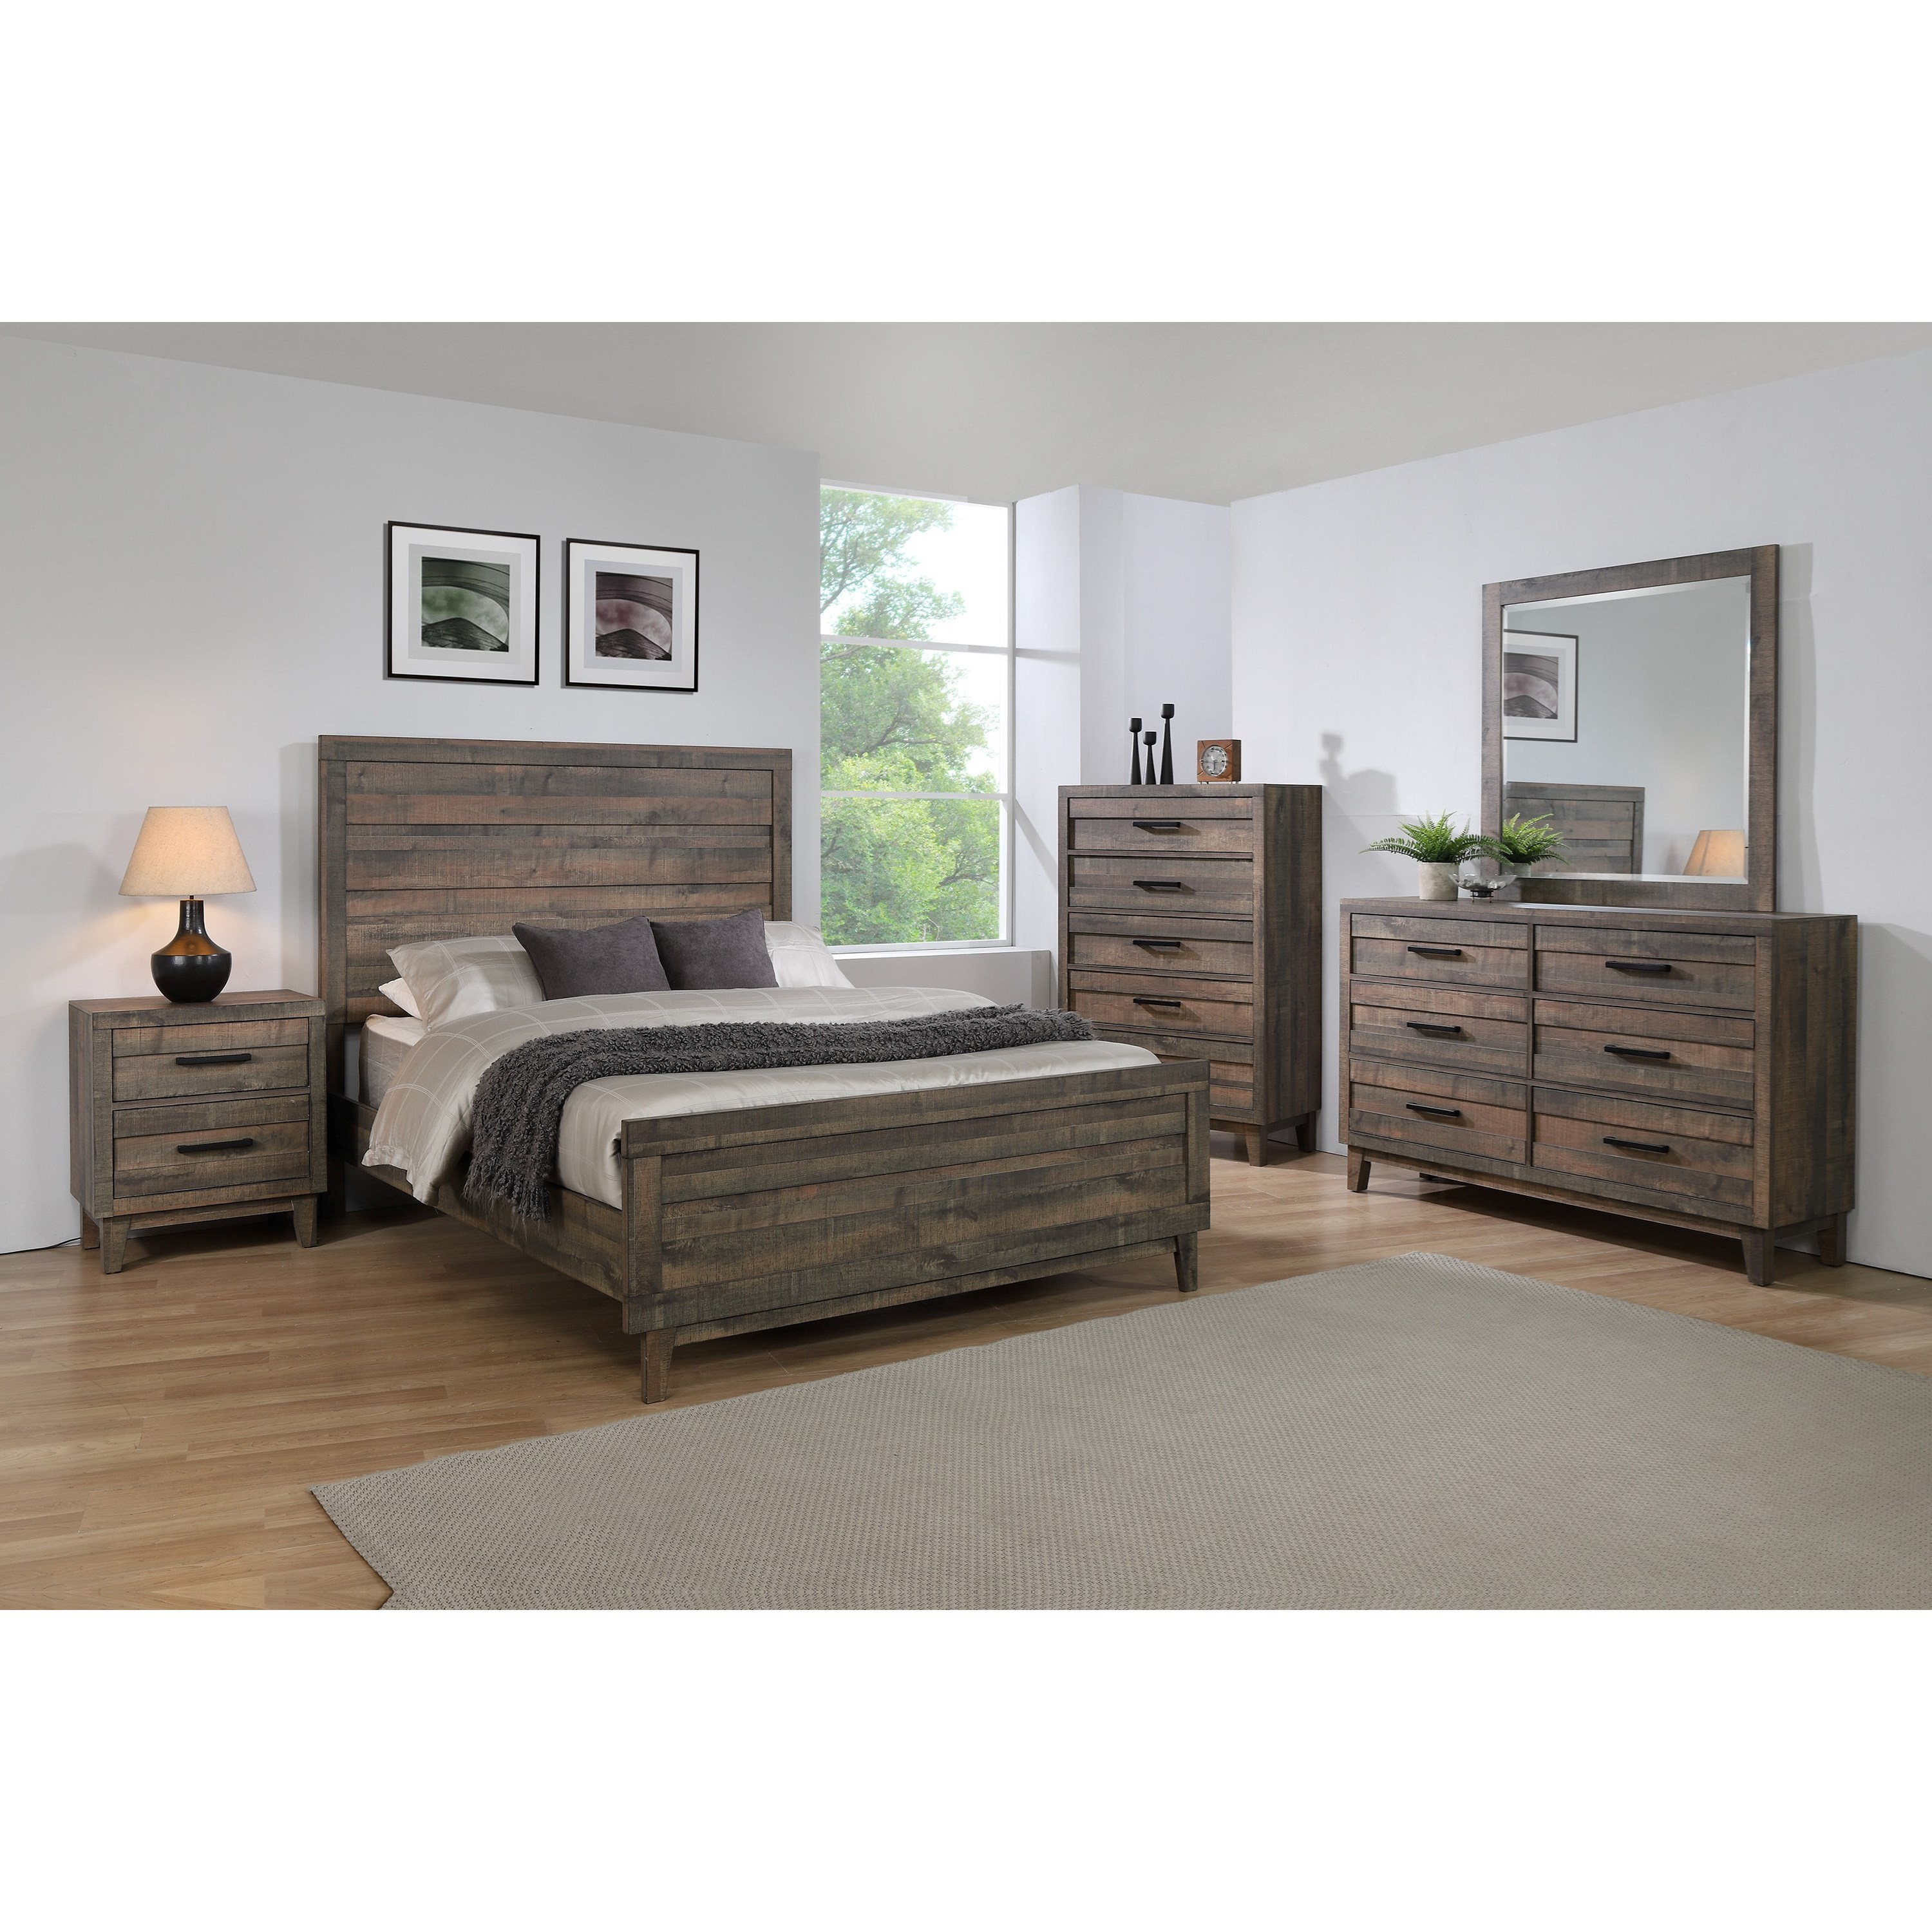 Tacoma Queen Bed Room Group by Crown Mark at Northeast Factory Direct